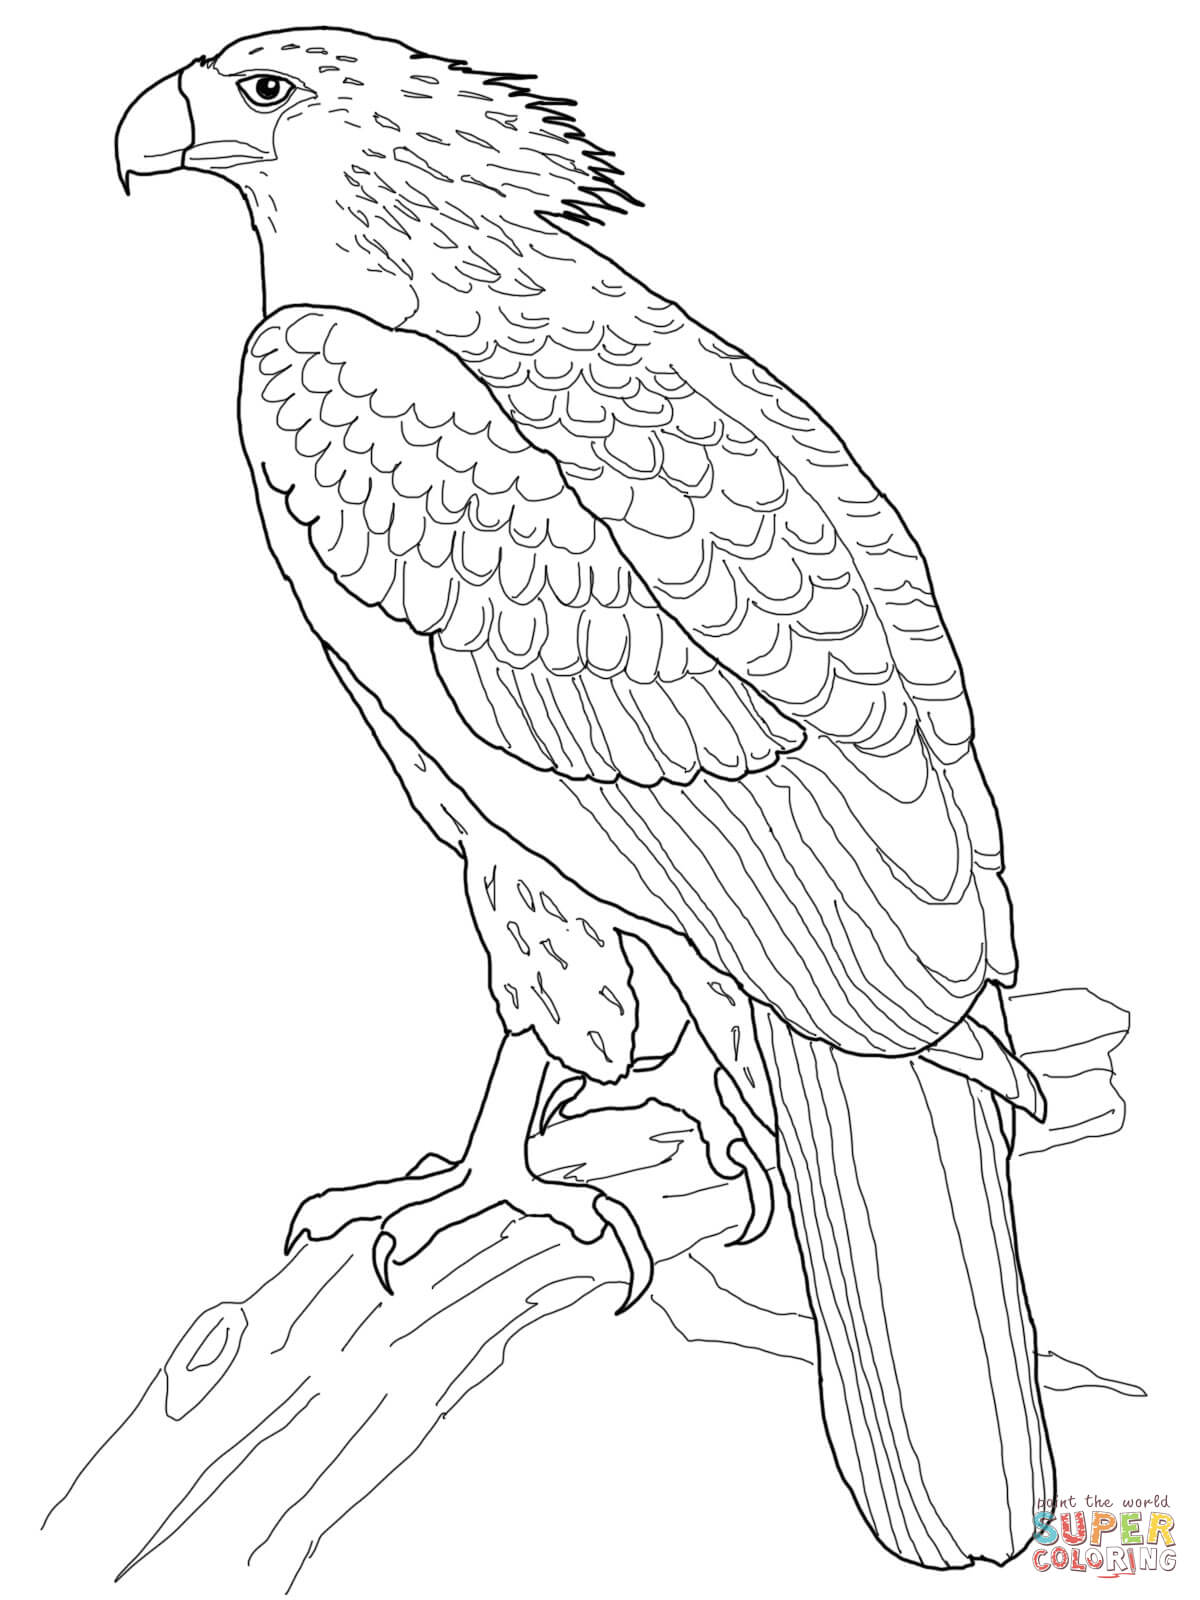 cartoon eagle coloring pages harpy eagle coloring download harpy eagle coloring for coloring cartoon eagle pages